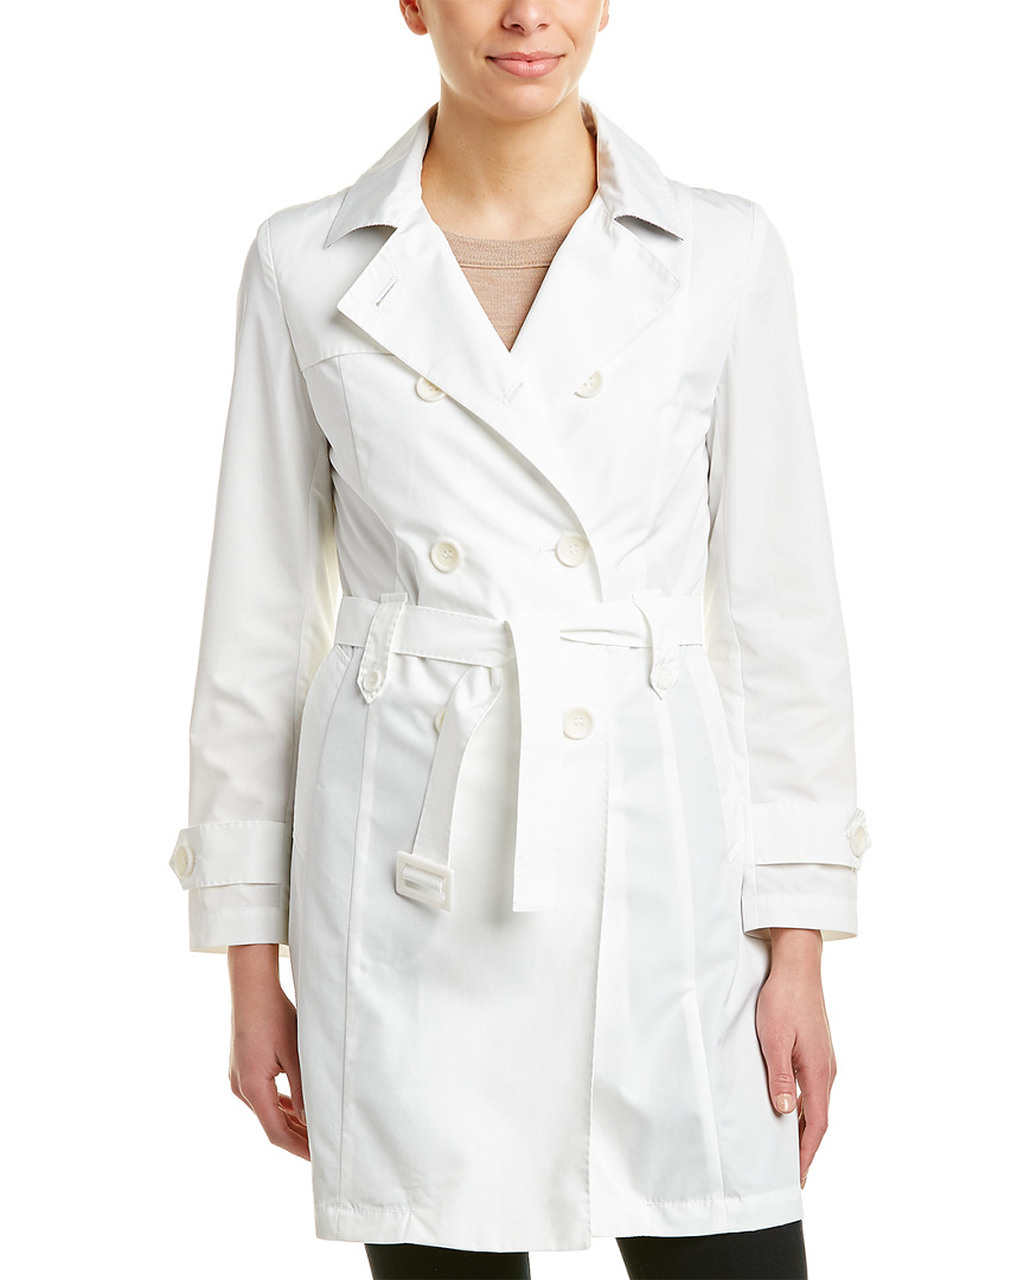 5c71e78ece1 Cinzia Rocca Icons Belted Trench Coat~1411543583 - Carsons